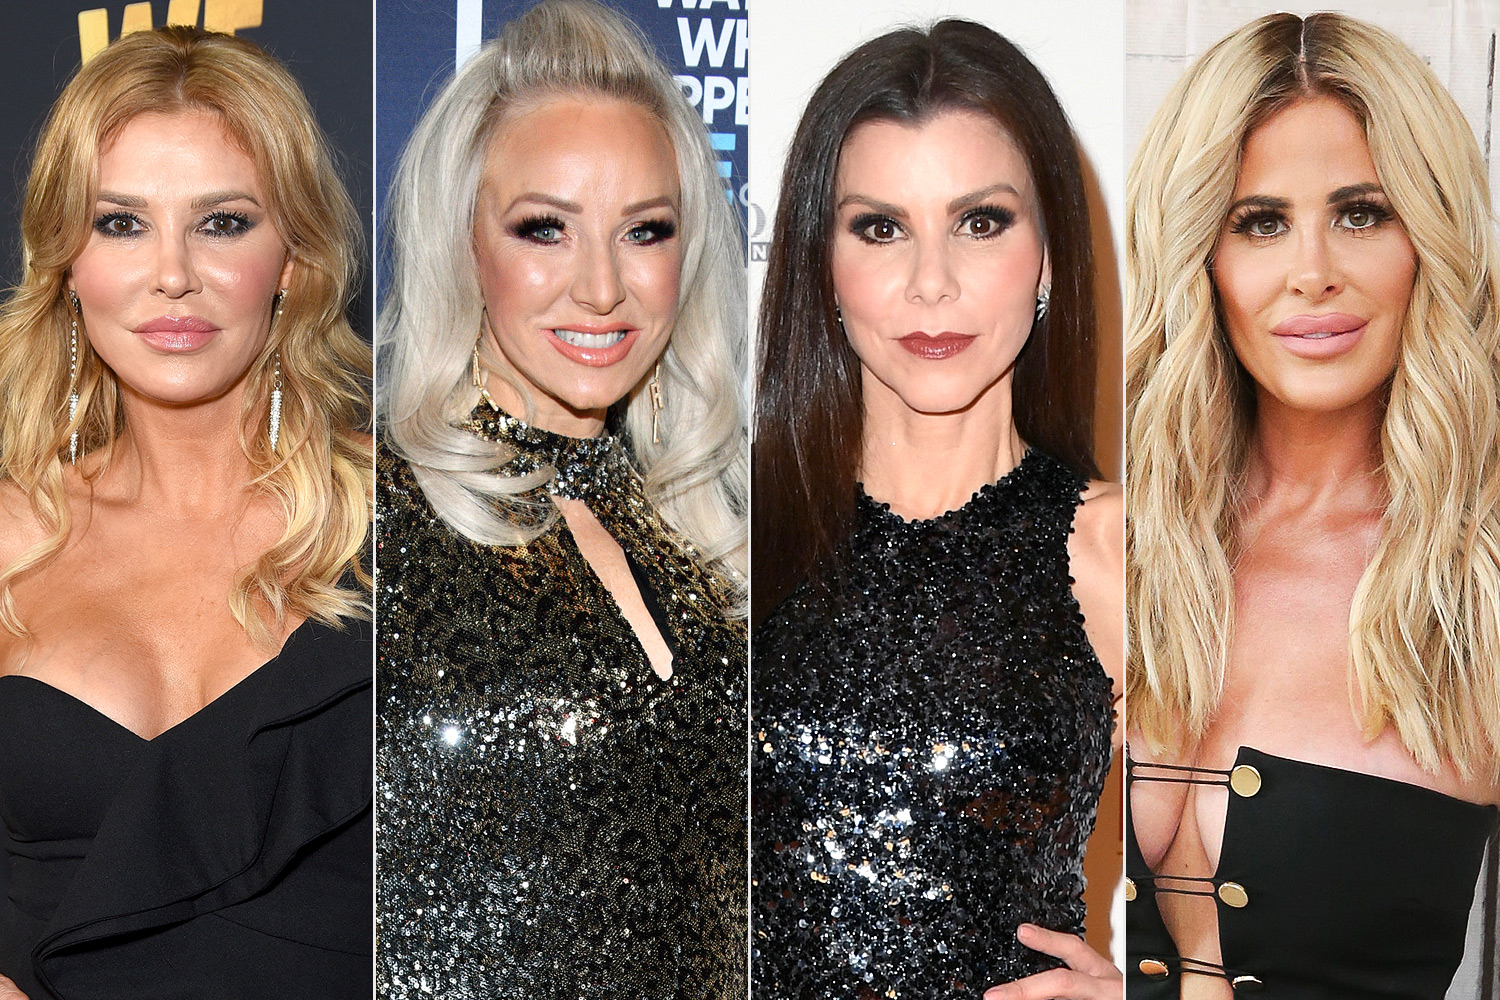 Brandi Glanville; Margaret Josephs; Heather Dubrow, Kim Zolciak-Biermann